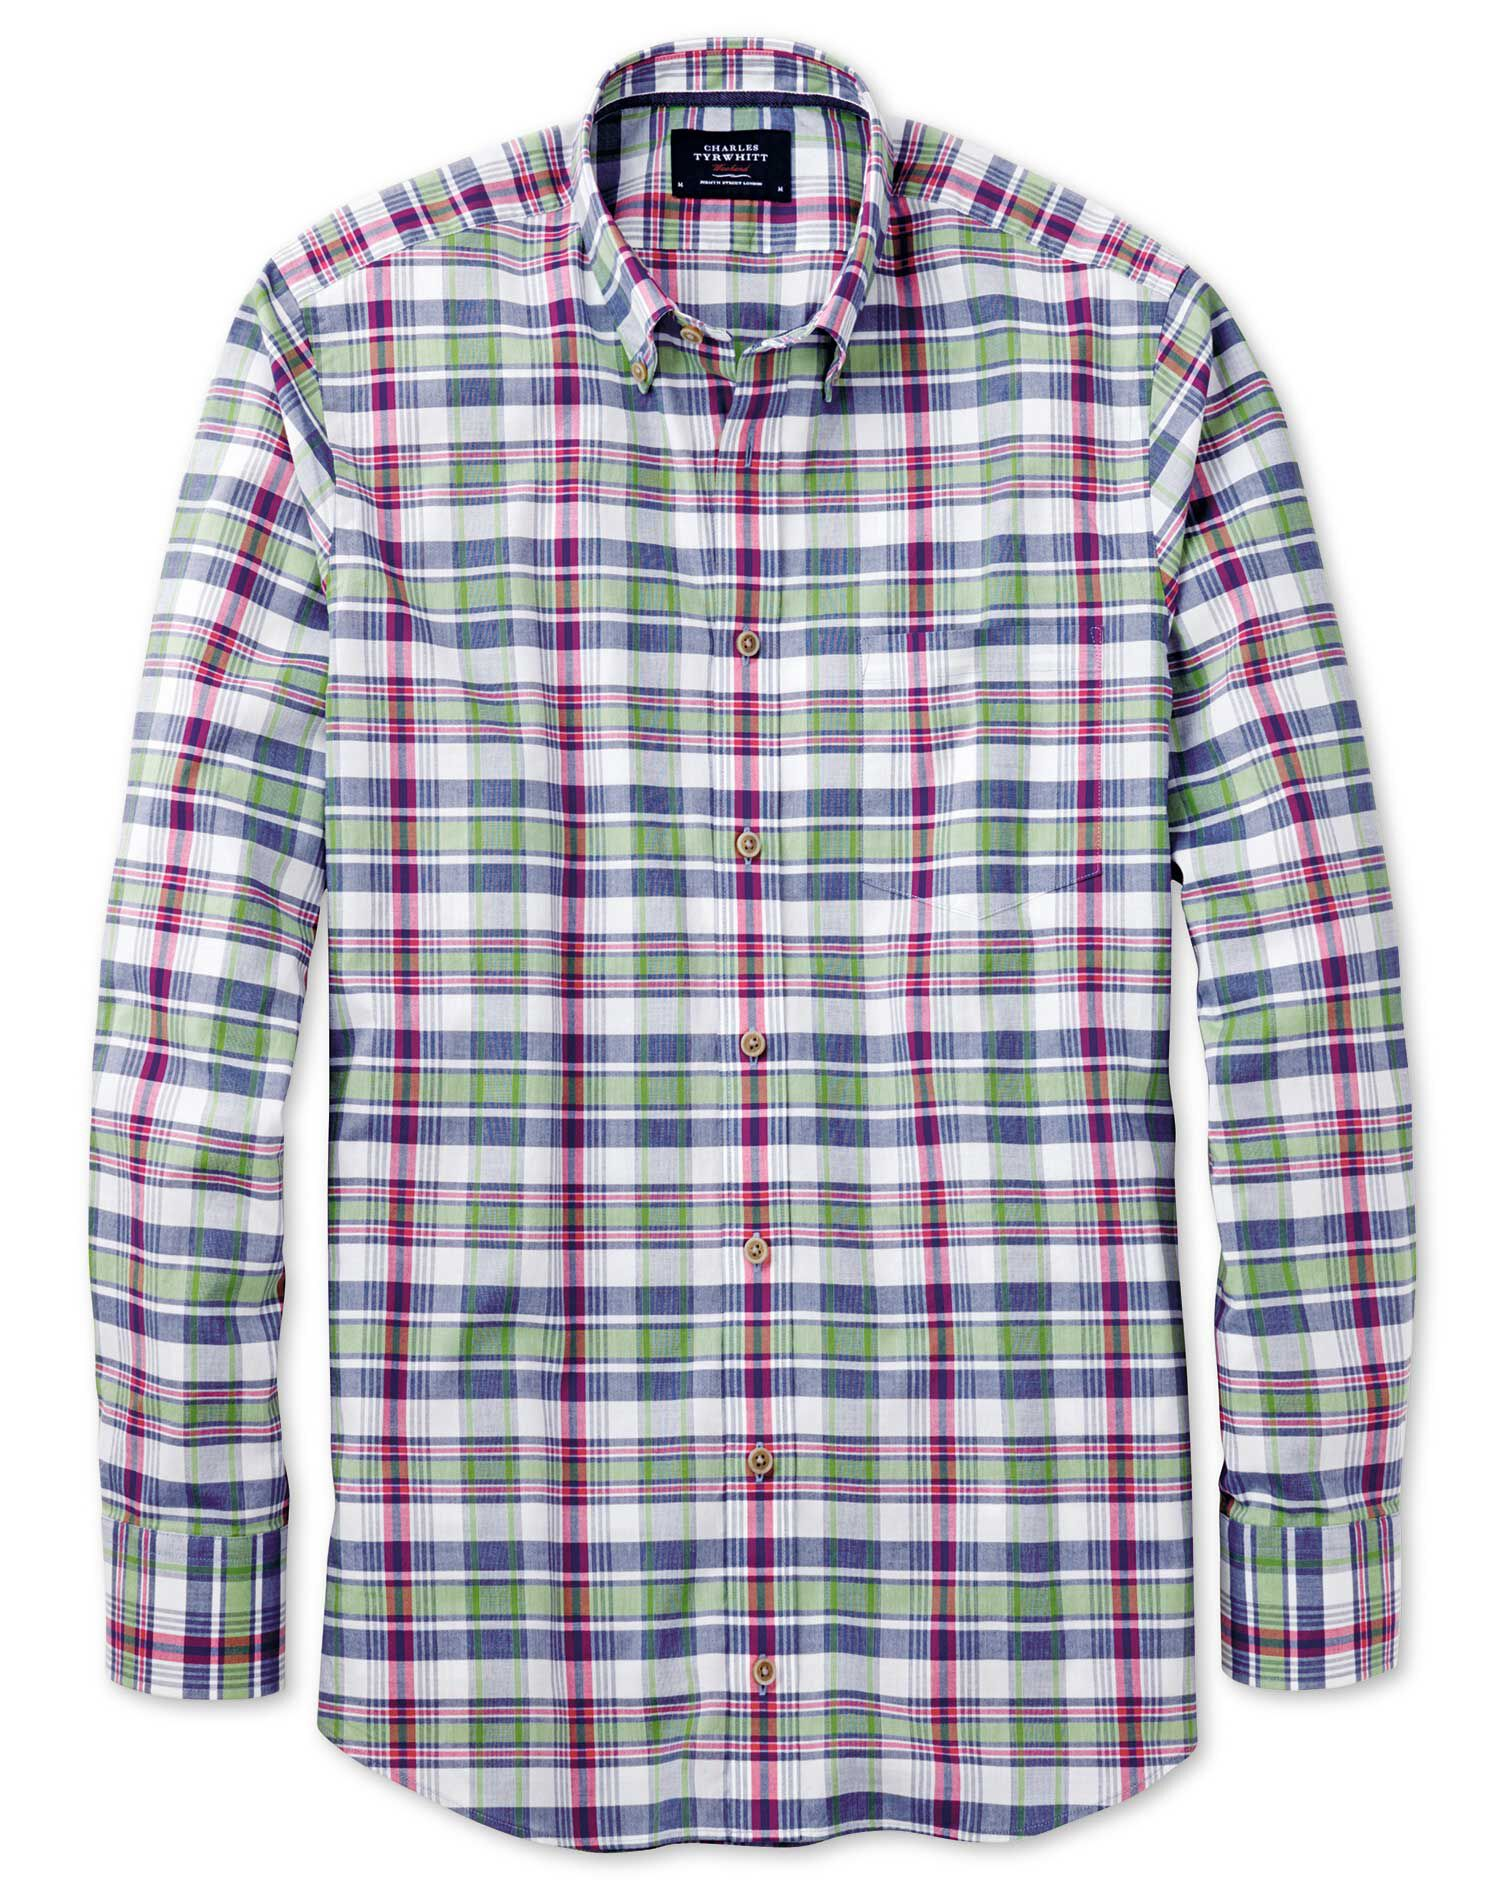 Classic Fit Poplin Pink and Green Check Cotton Shirt Single Cuff Size Large by Charles Tyrwhitt